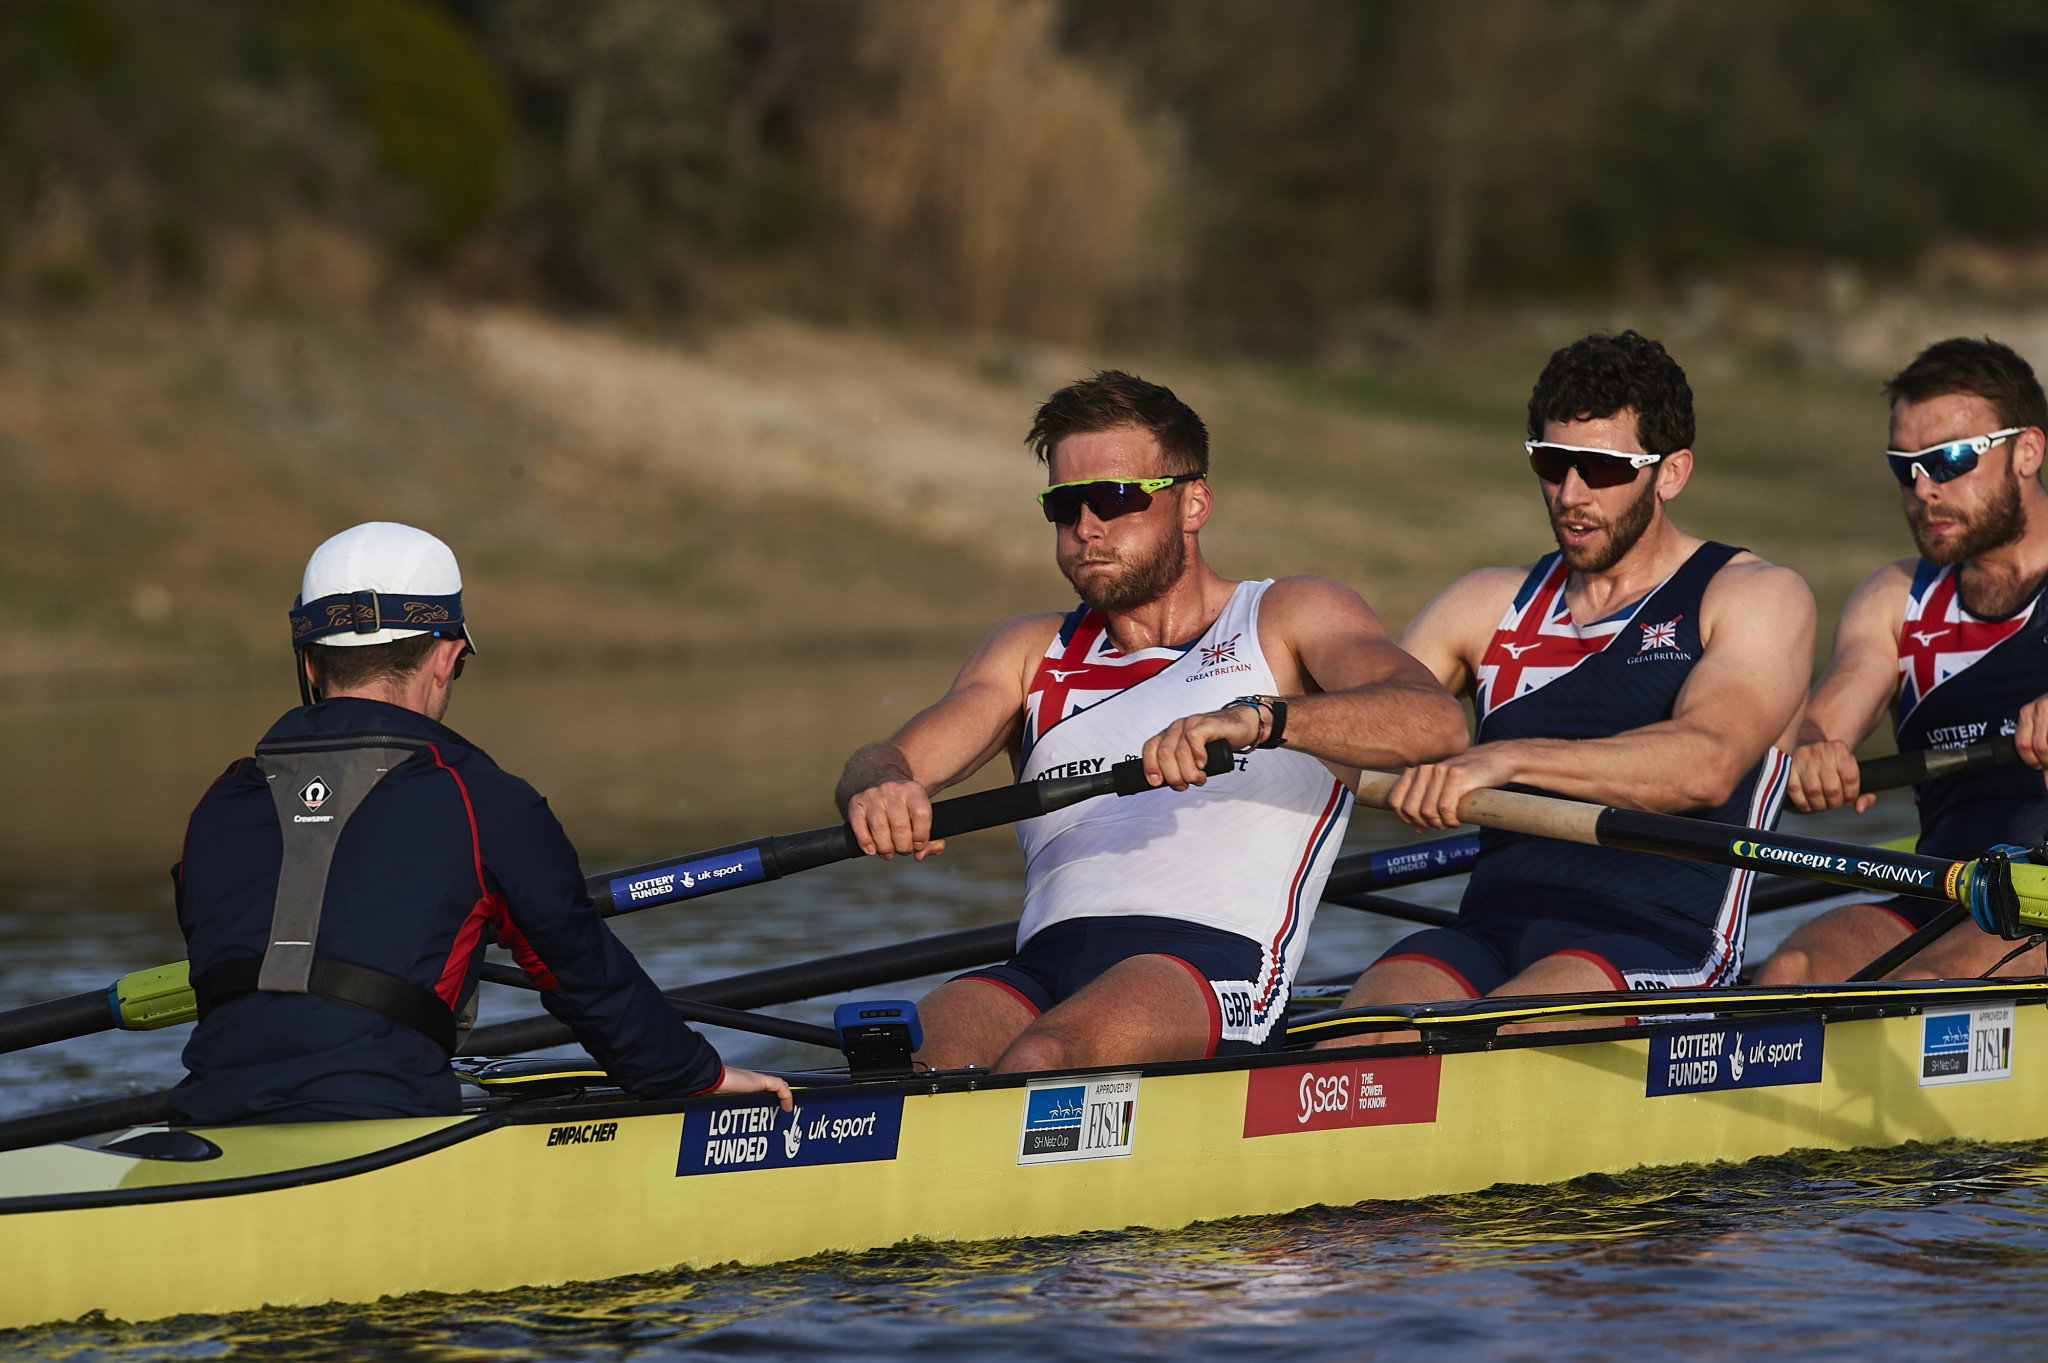 British Rowing extends analytics deal with SAS through postponed Tokyo 2020 Olympics